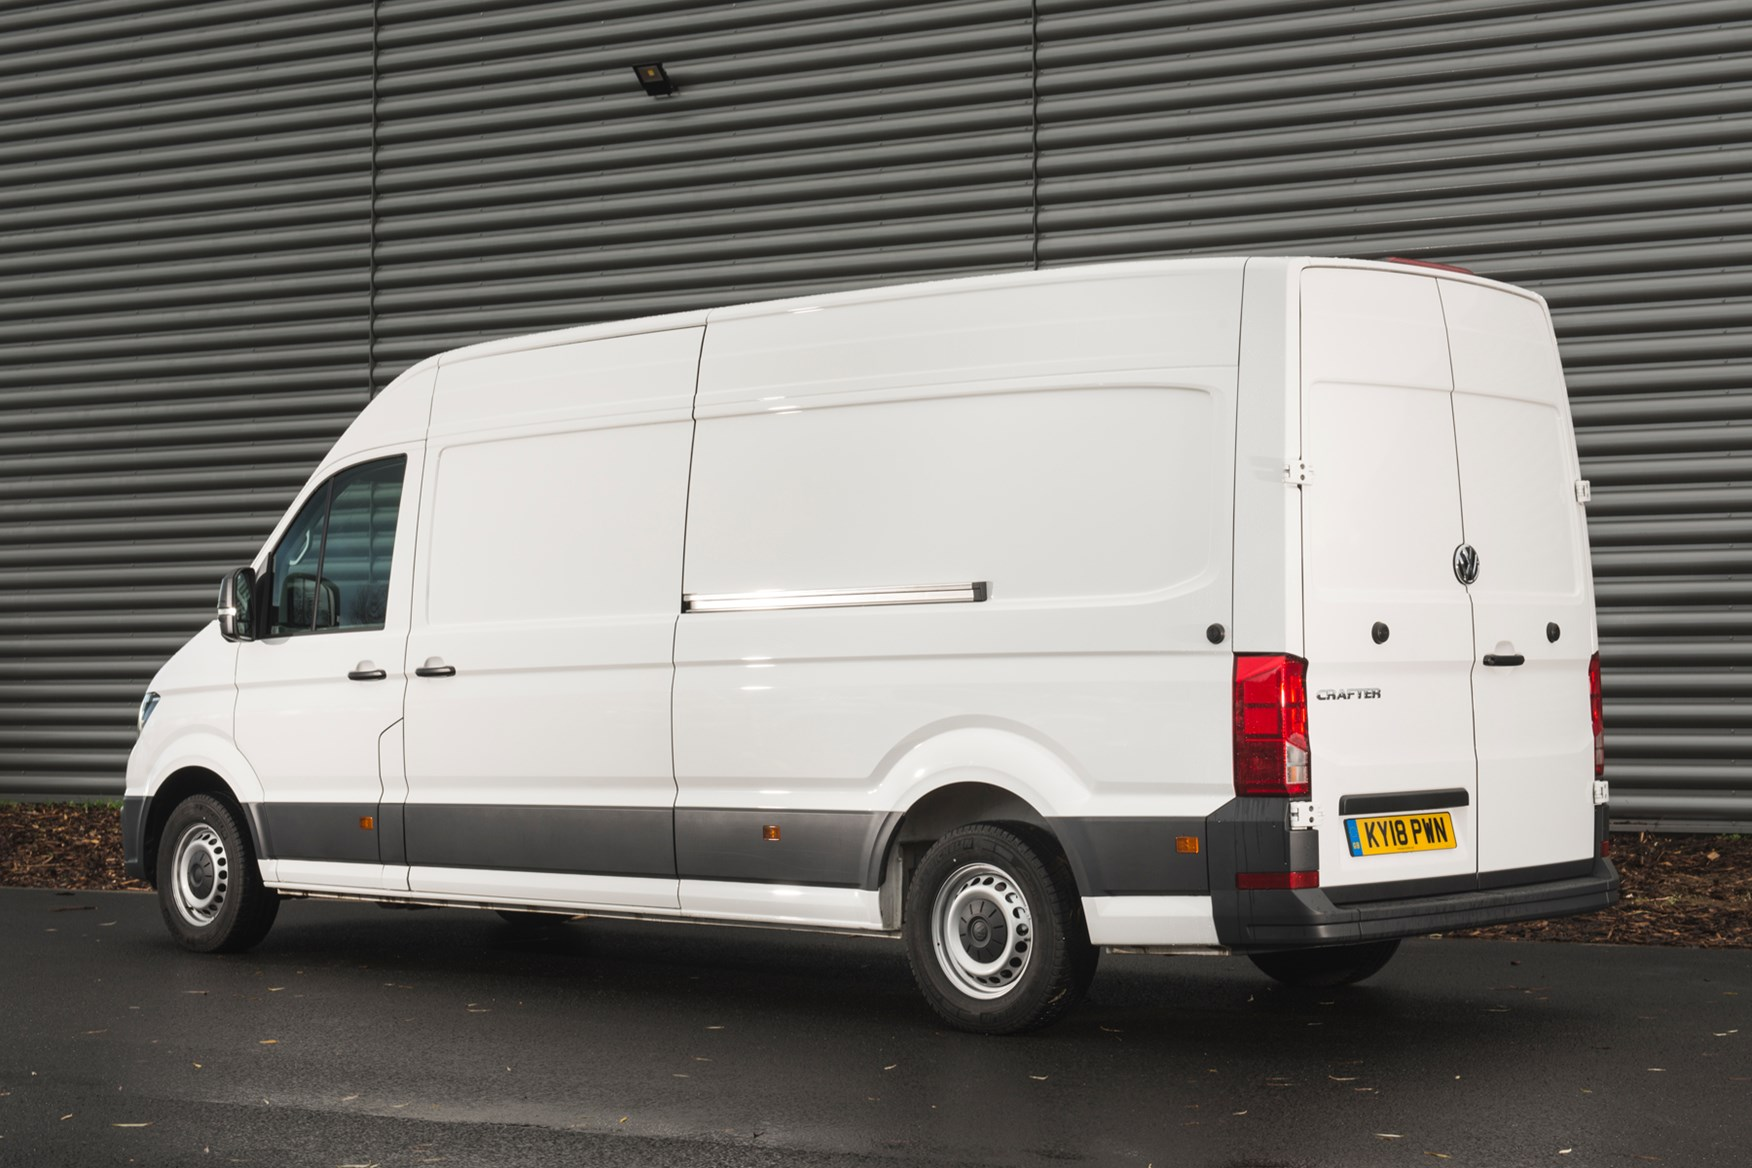 VW Crafter RWD long-wheelbase 140hp review